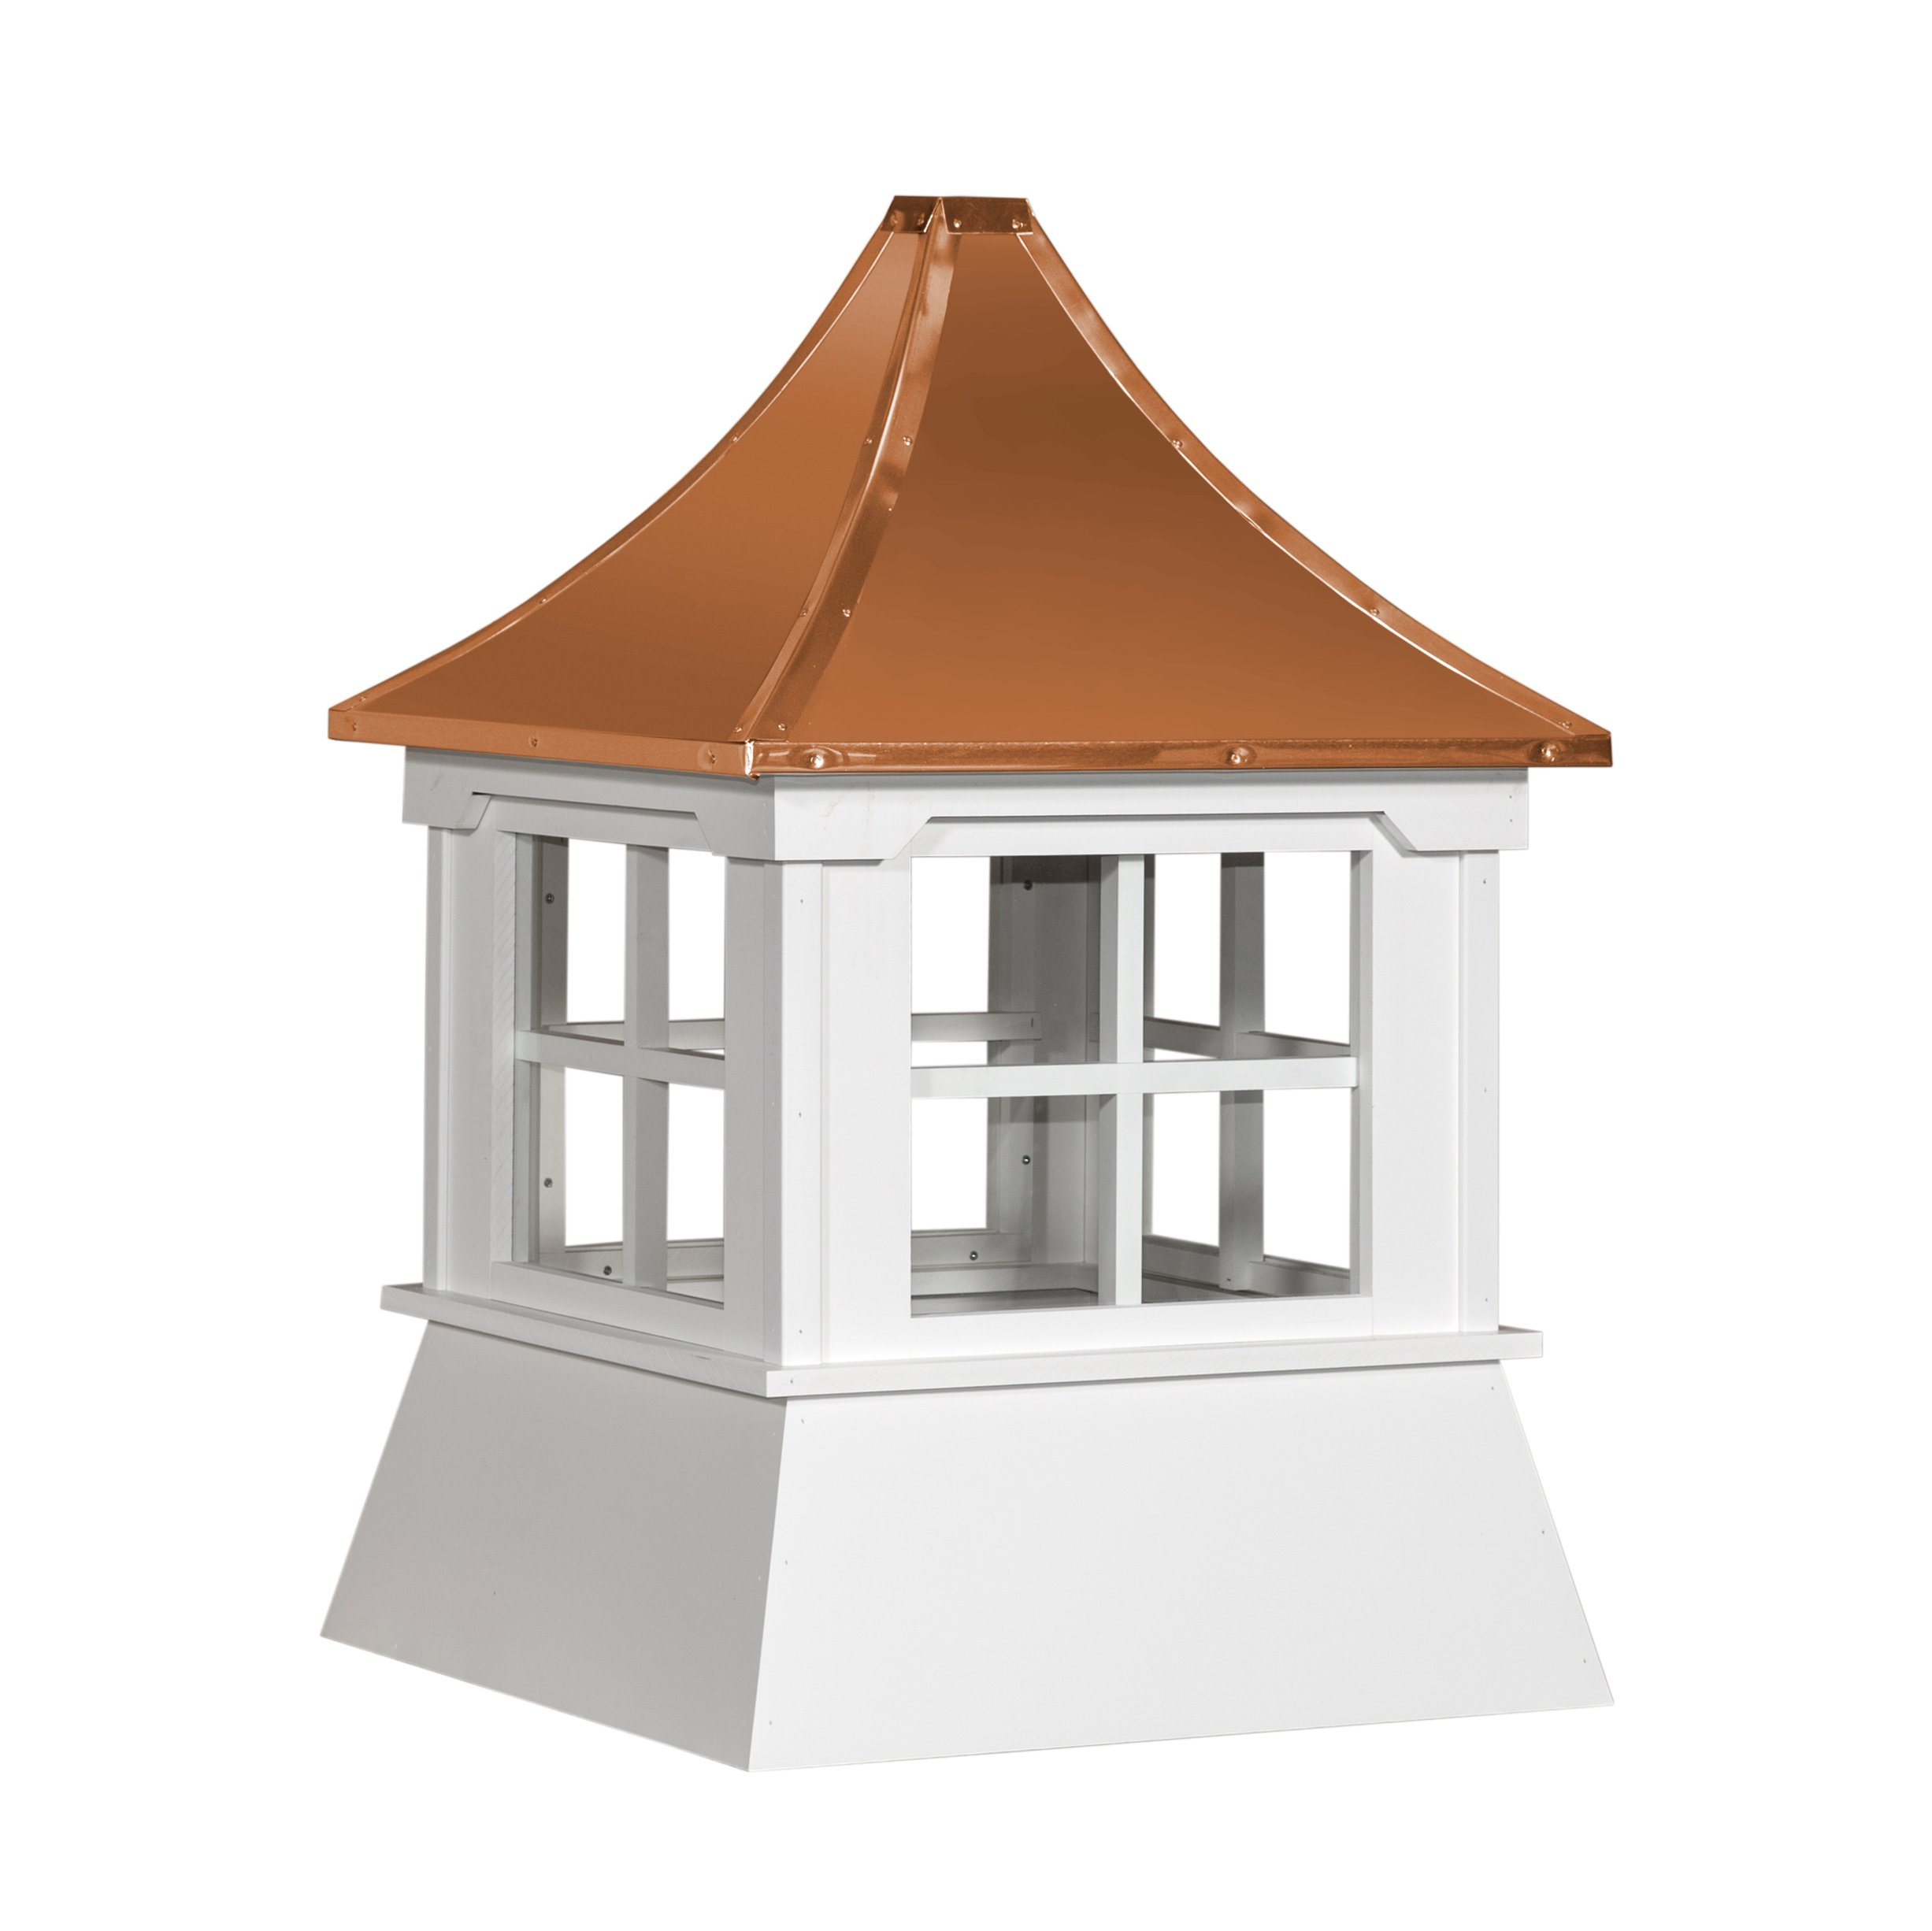 Cupola 16'' Vinyl Shed Cupola with Windows Copper Metal Pagoda Roof